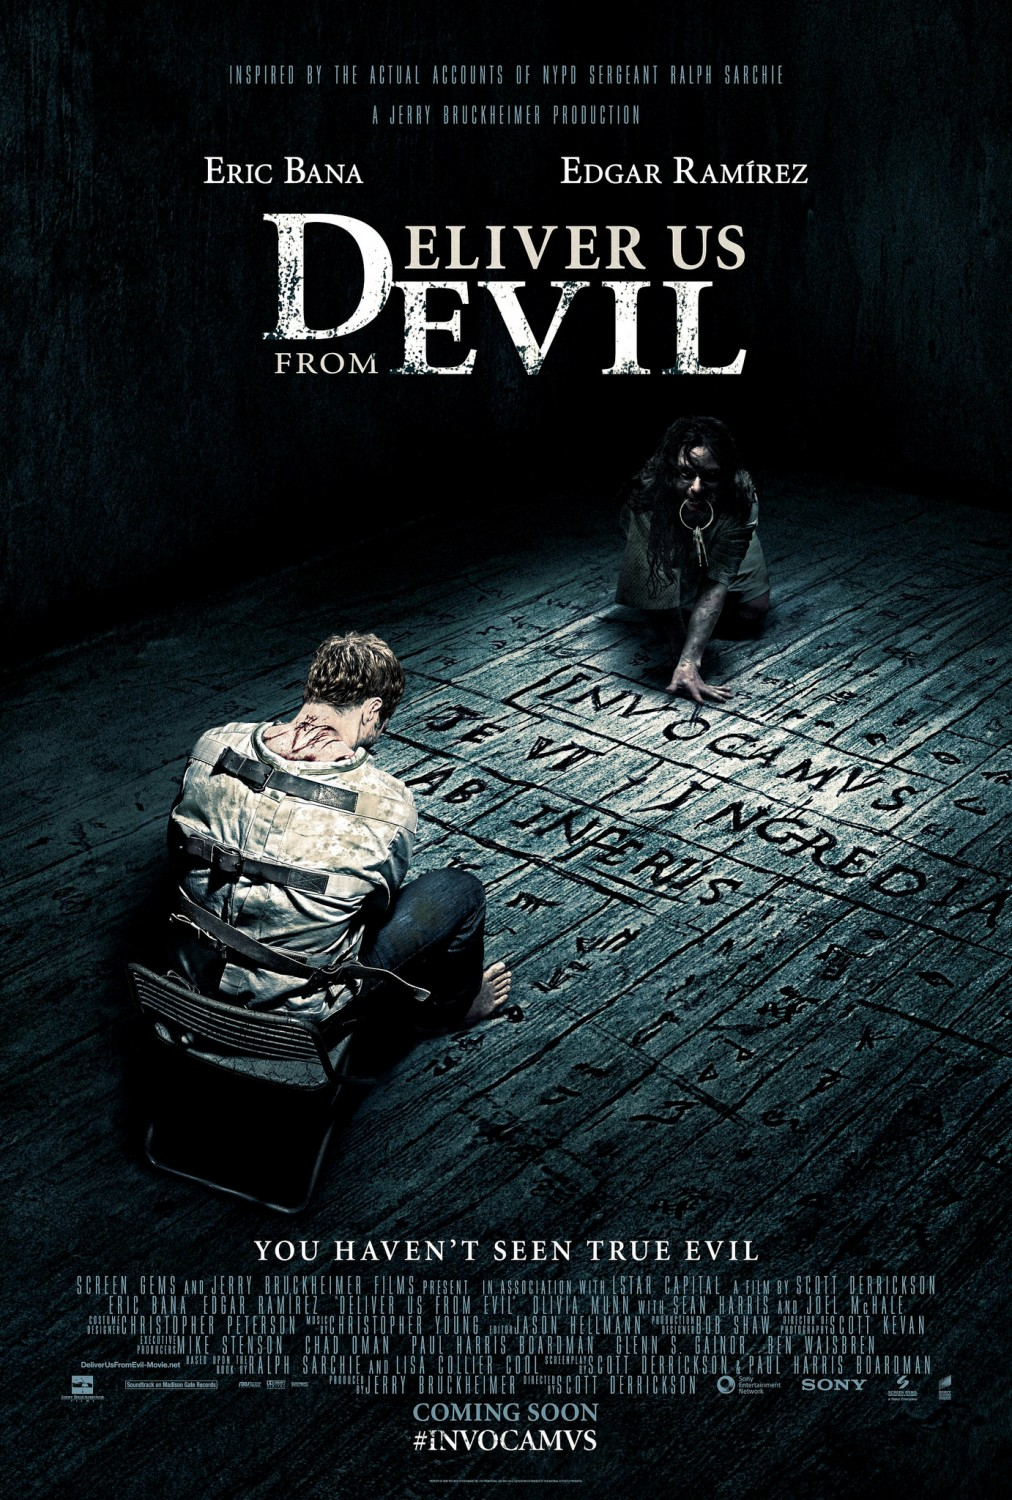 Deliver Us from Evil (2014) ล่าท้าอสูรนรก